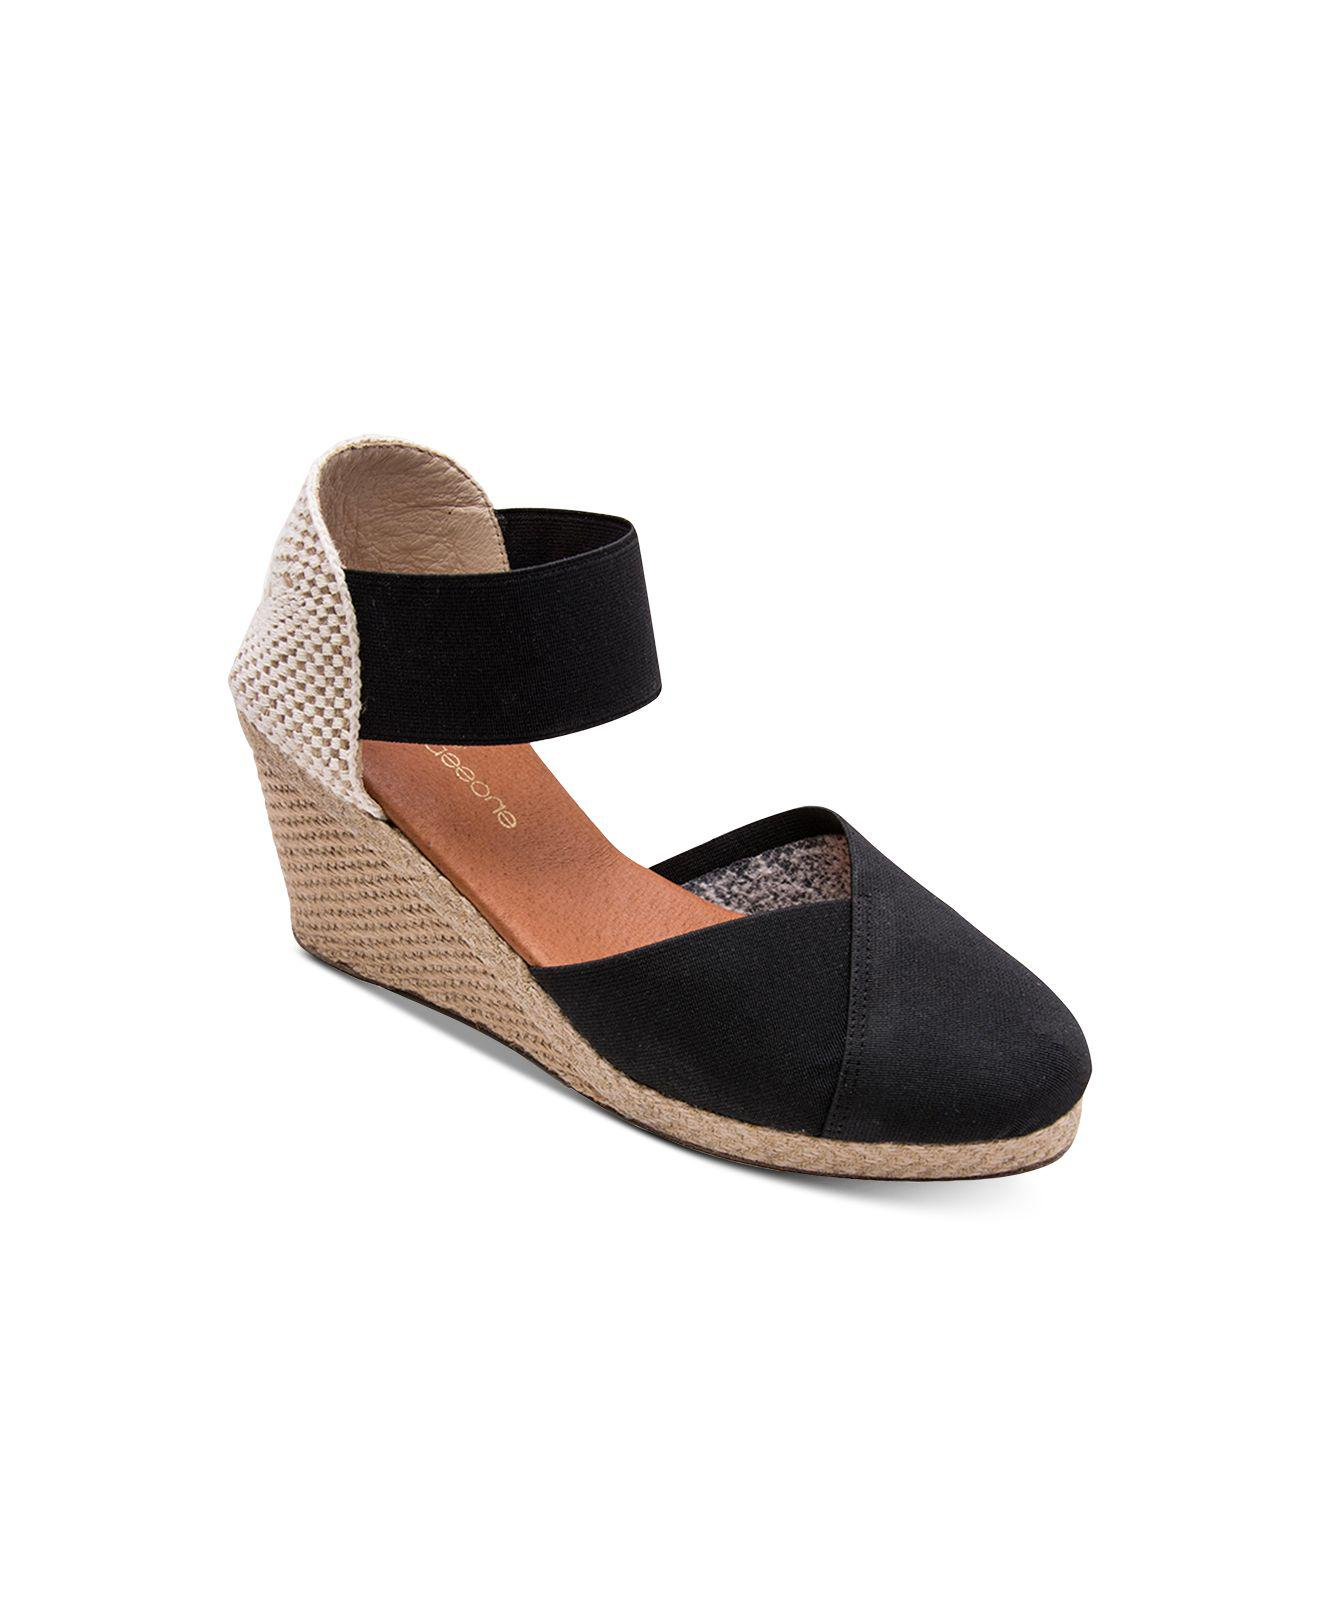 6e4987eaa82 Lyst - Andre Assous Anouka Wedge Espadrilles in Black